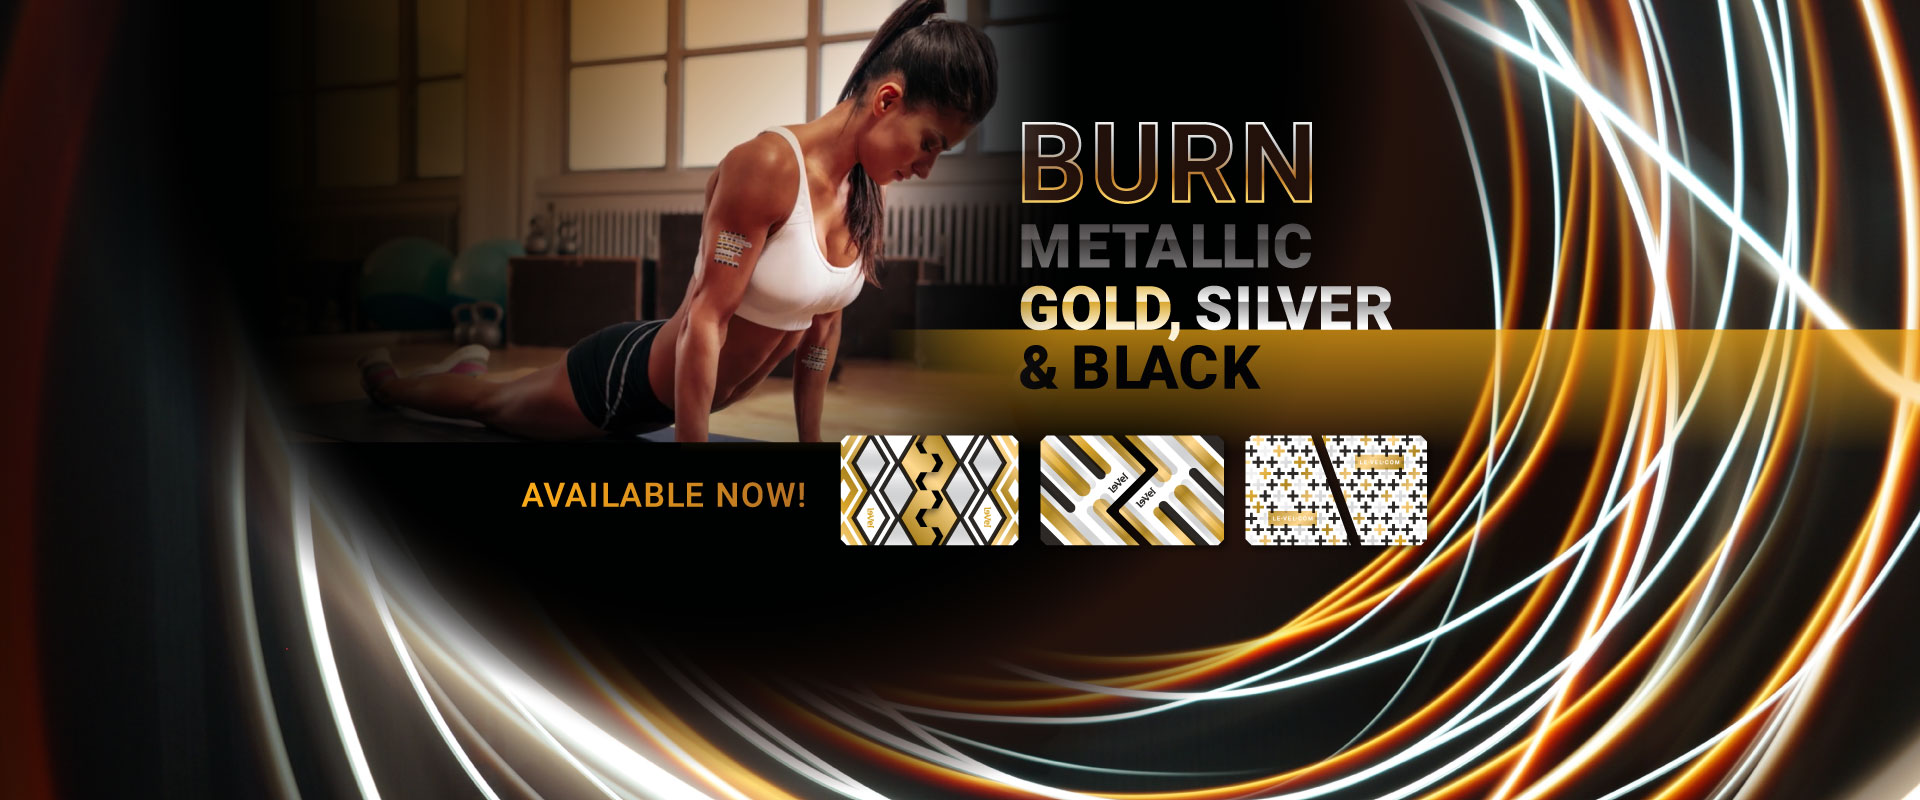 BURN: Metallic Gold Silver Black